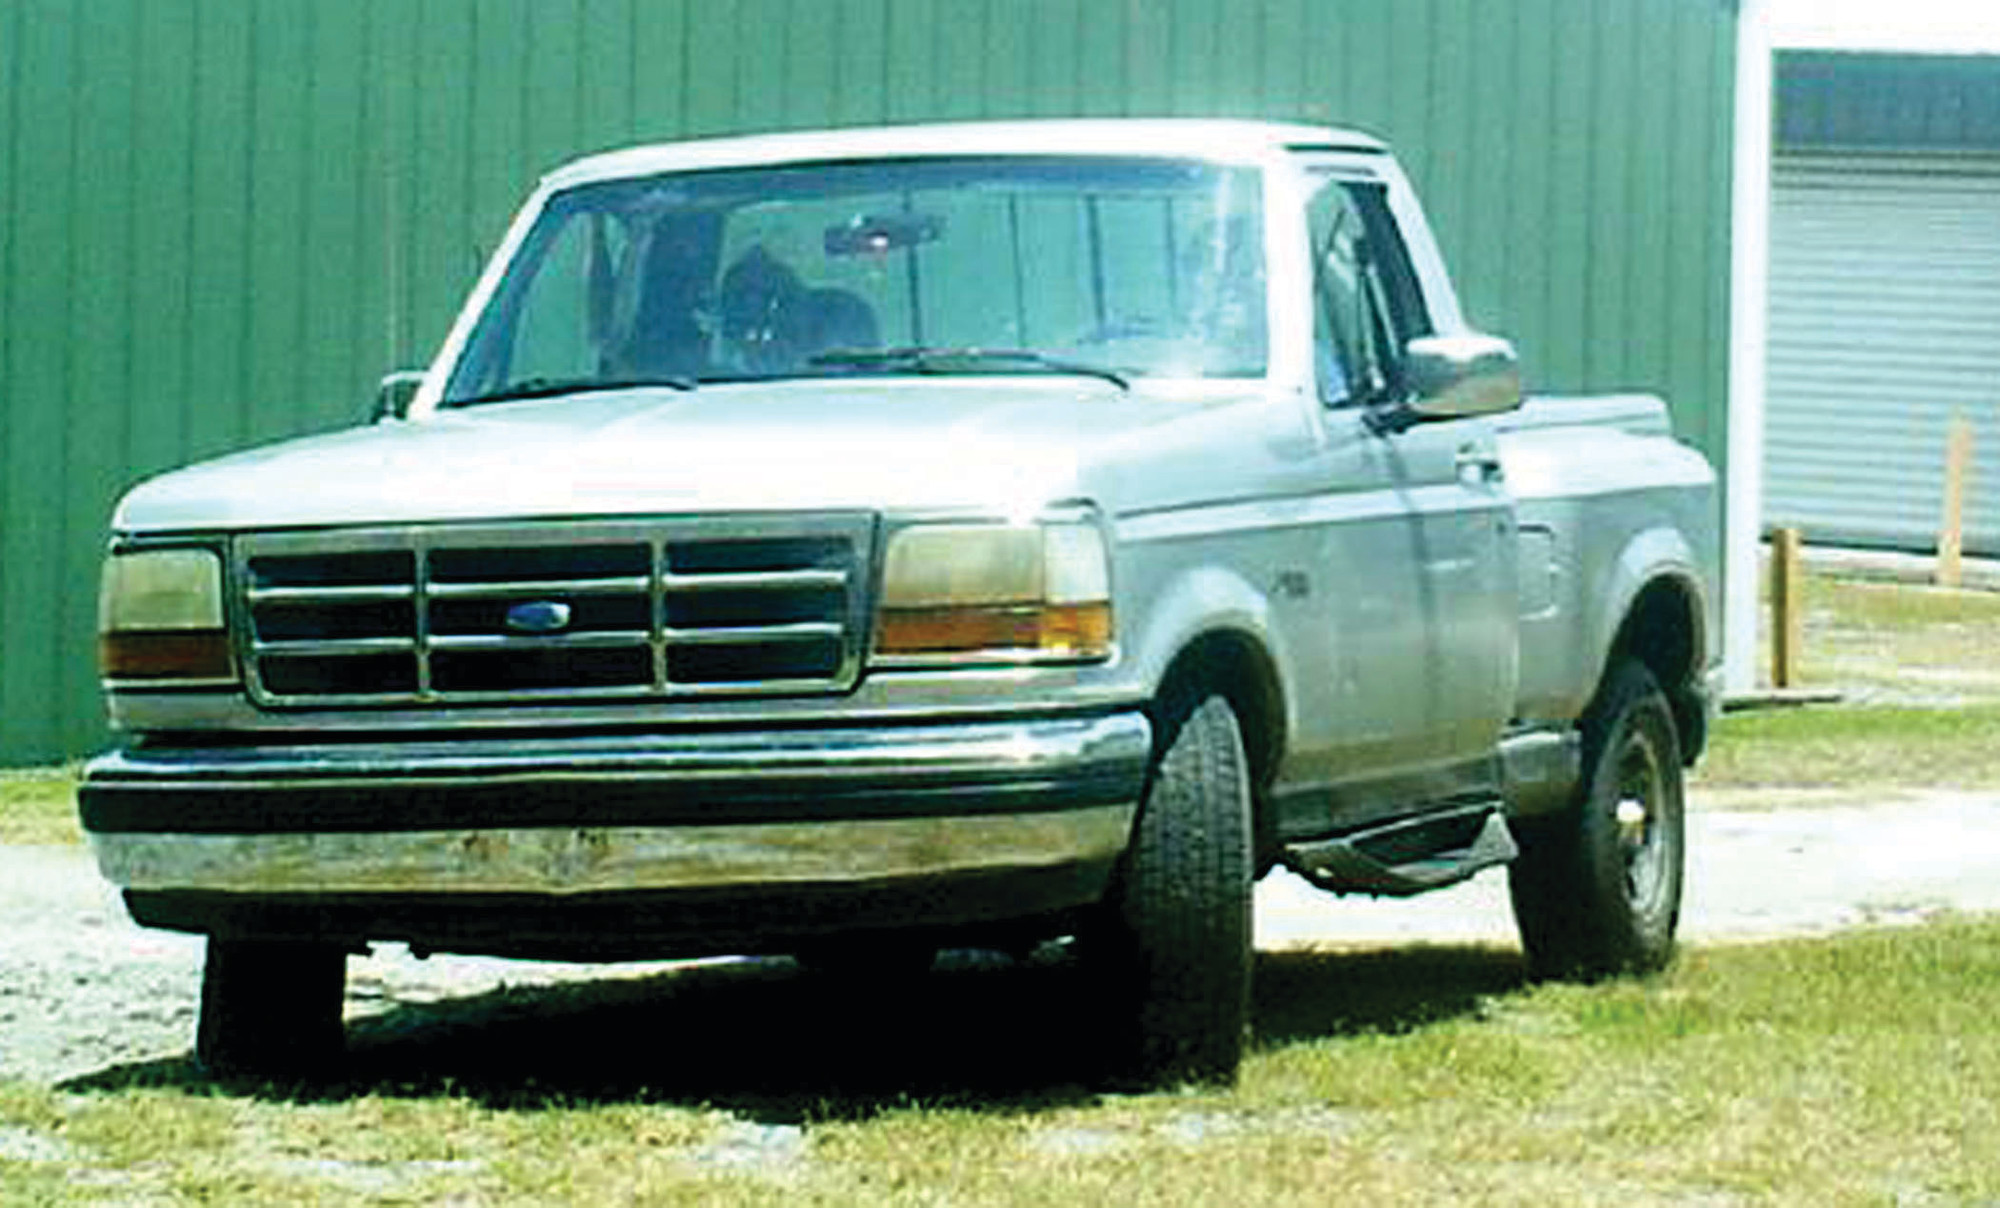 The sheriff's office is also asking for help in identifying a vehicle that was parked inside a fence at storage units near the   intersection of S.C. 521 (Greeleyville Highway) and Bloomville Road on May 23.